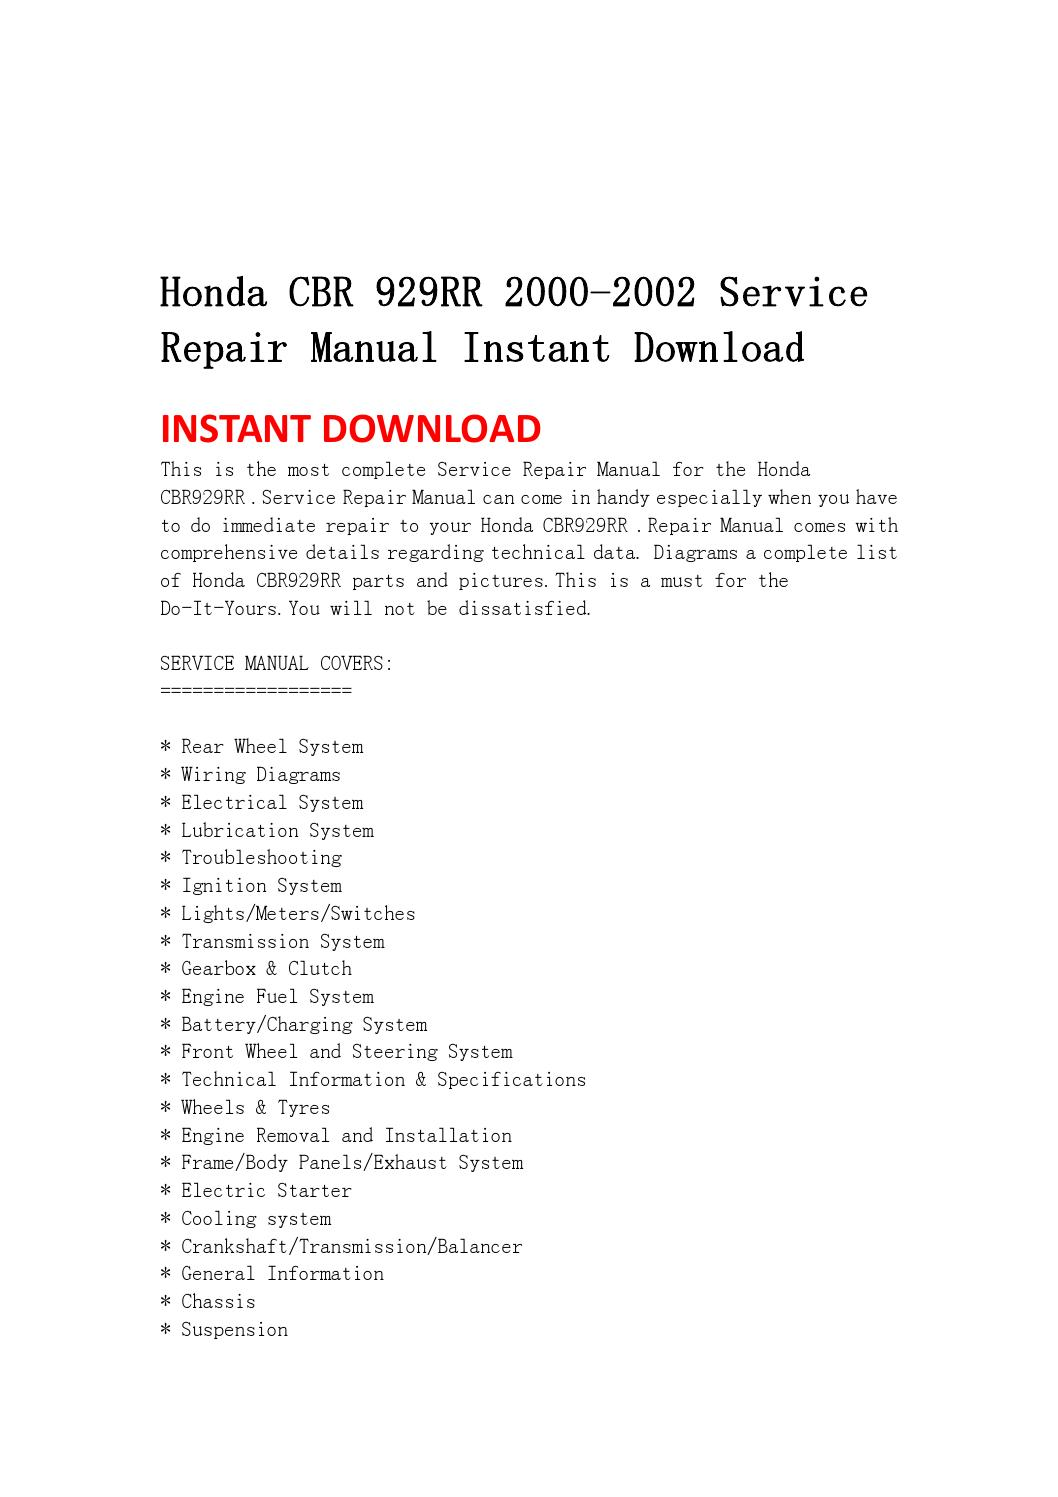 honda cbr 929rr 2000 2002 service repair manual instant download by rh issuu com Residential Electrical Wiring Diagrams Electrical Outlet Wiring Diagram